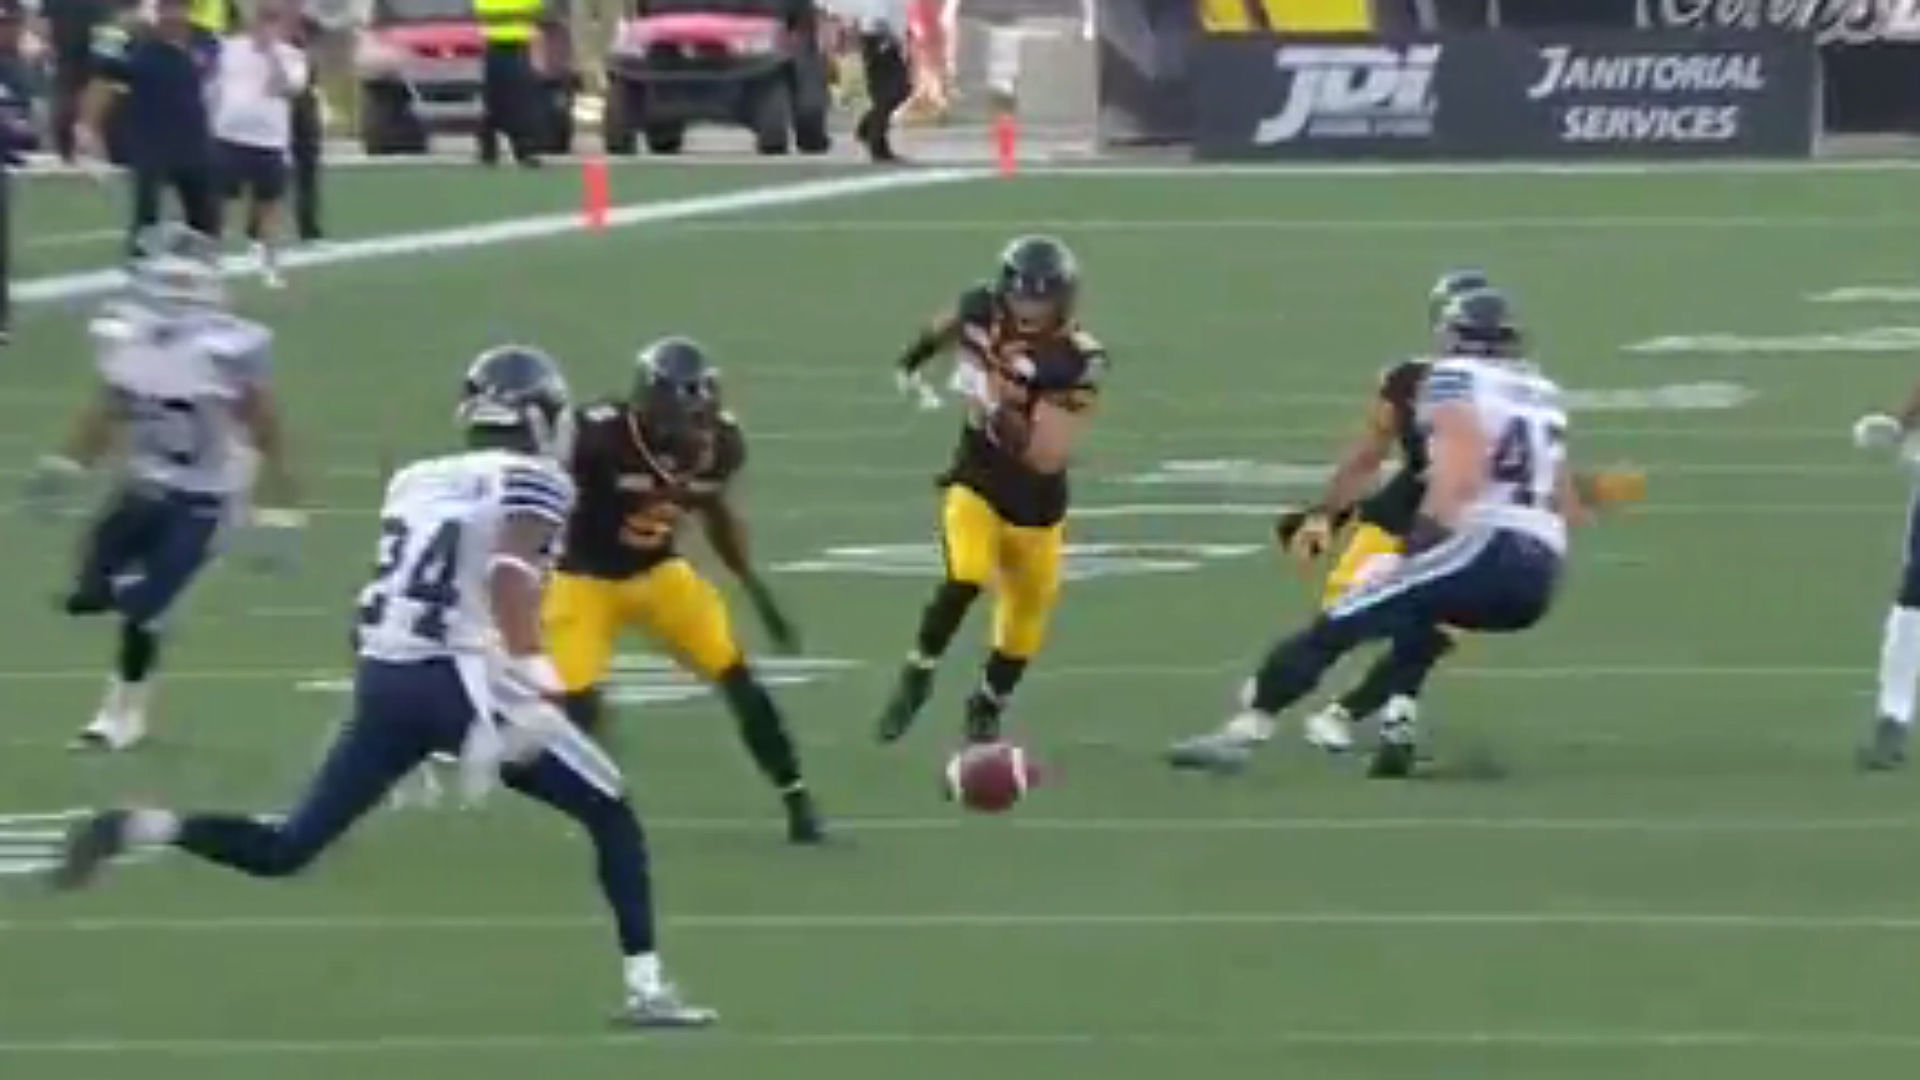 CFL's glorious rules allow Tiger-Cats to score with onside punt